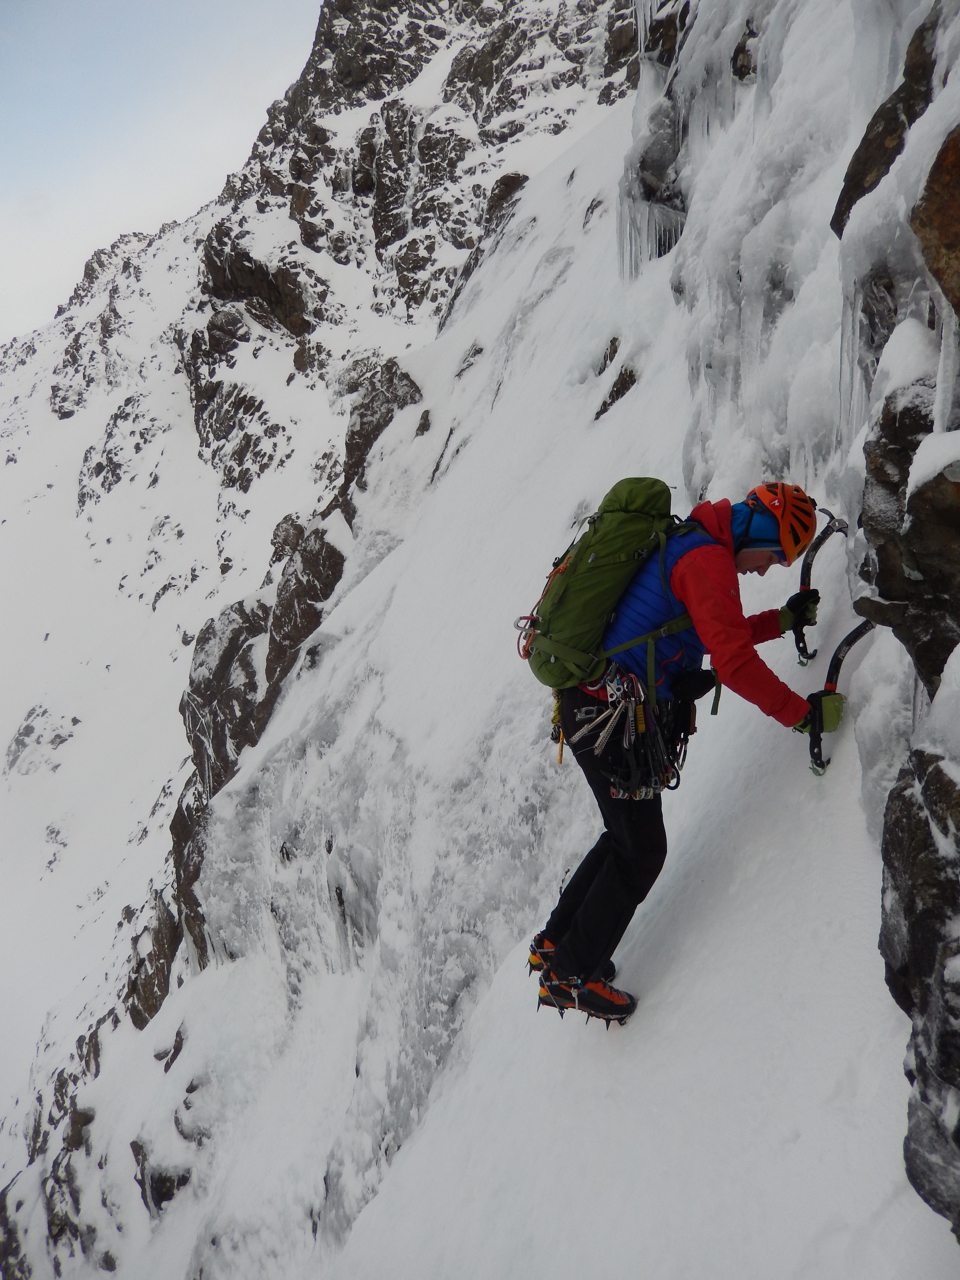 Joris hunting for an anchor at the start of pitch 2